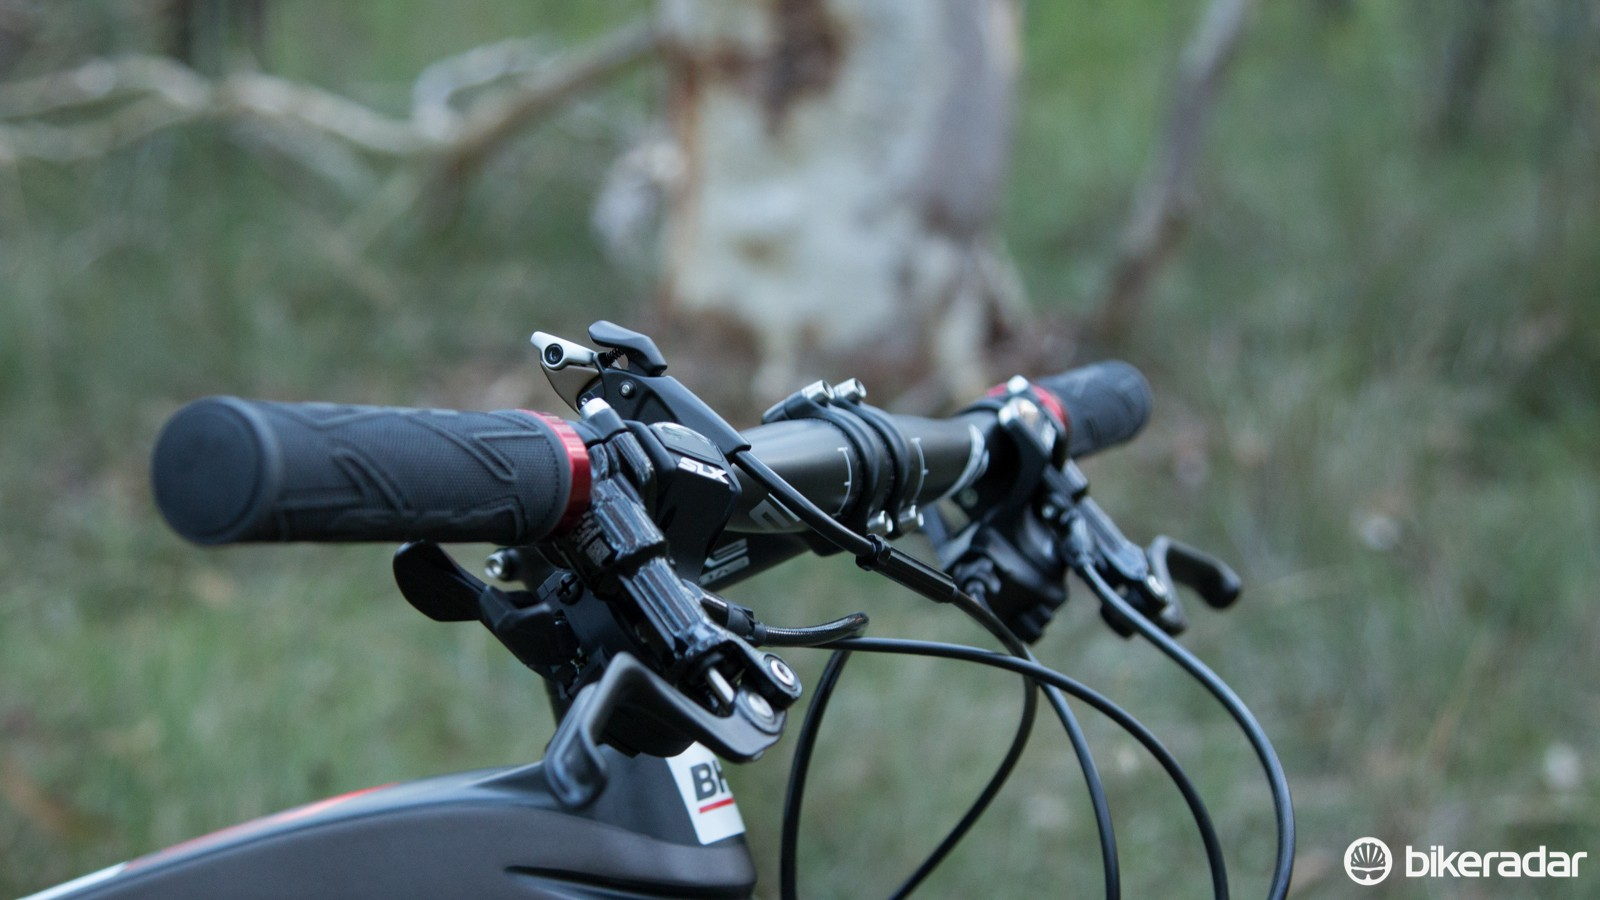 620mm wide bars simply aren't appropriate for a performance mountain bike. Most pro riders use bars of 660mm or wider these days for greater control and leverage